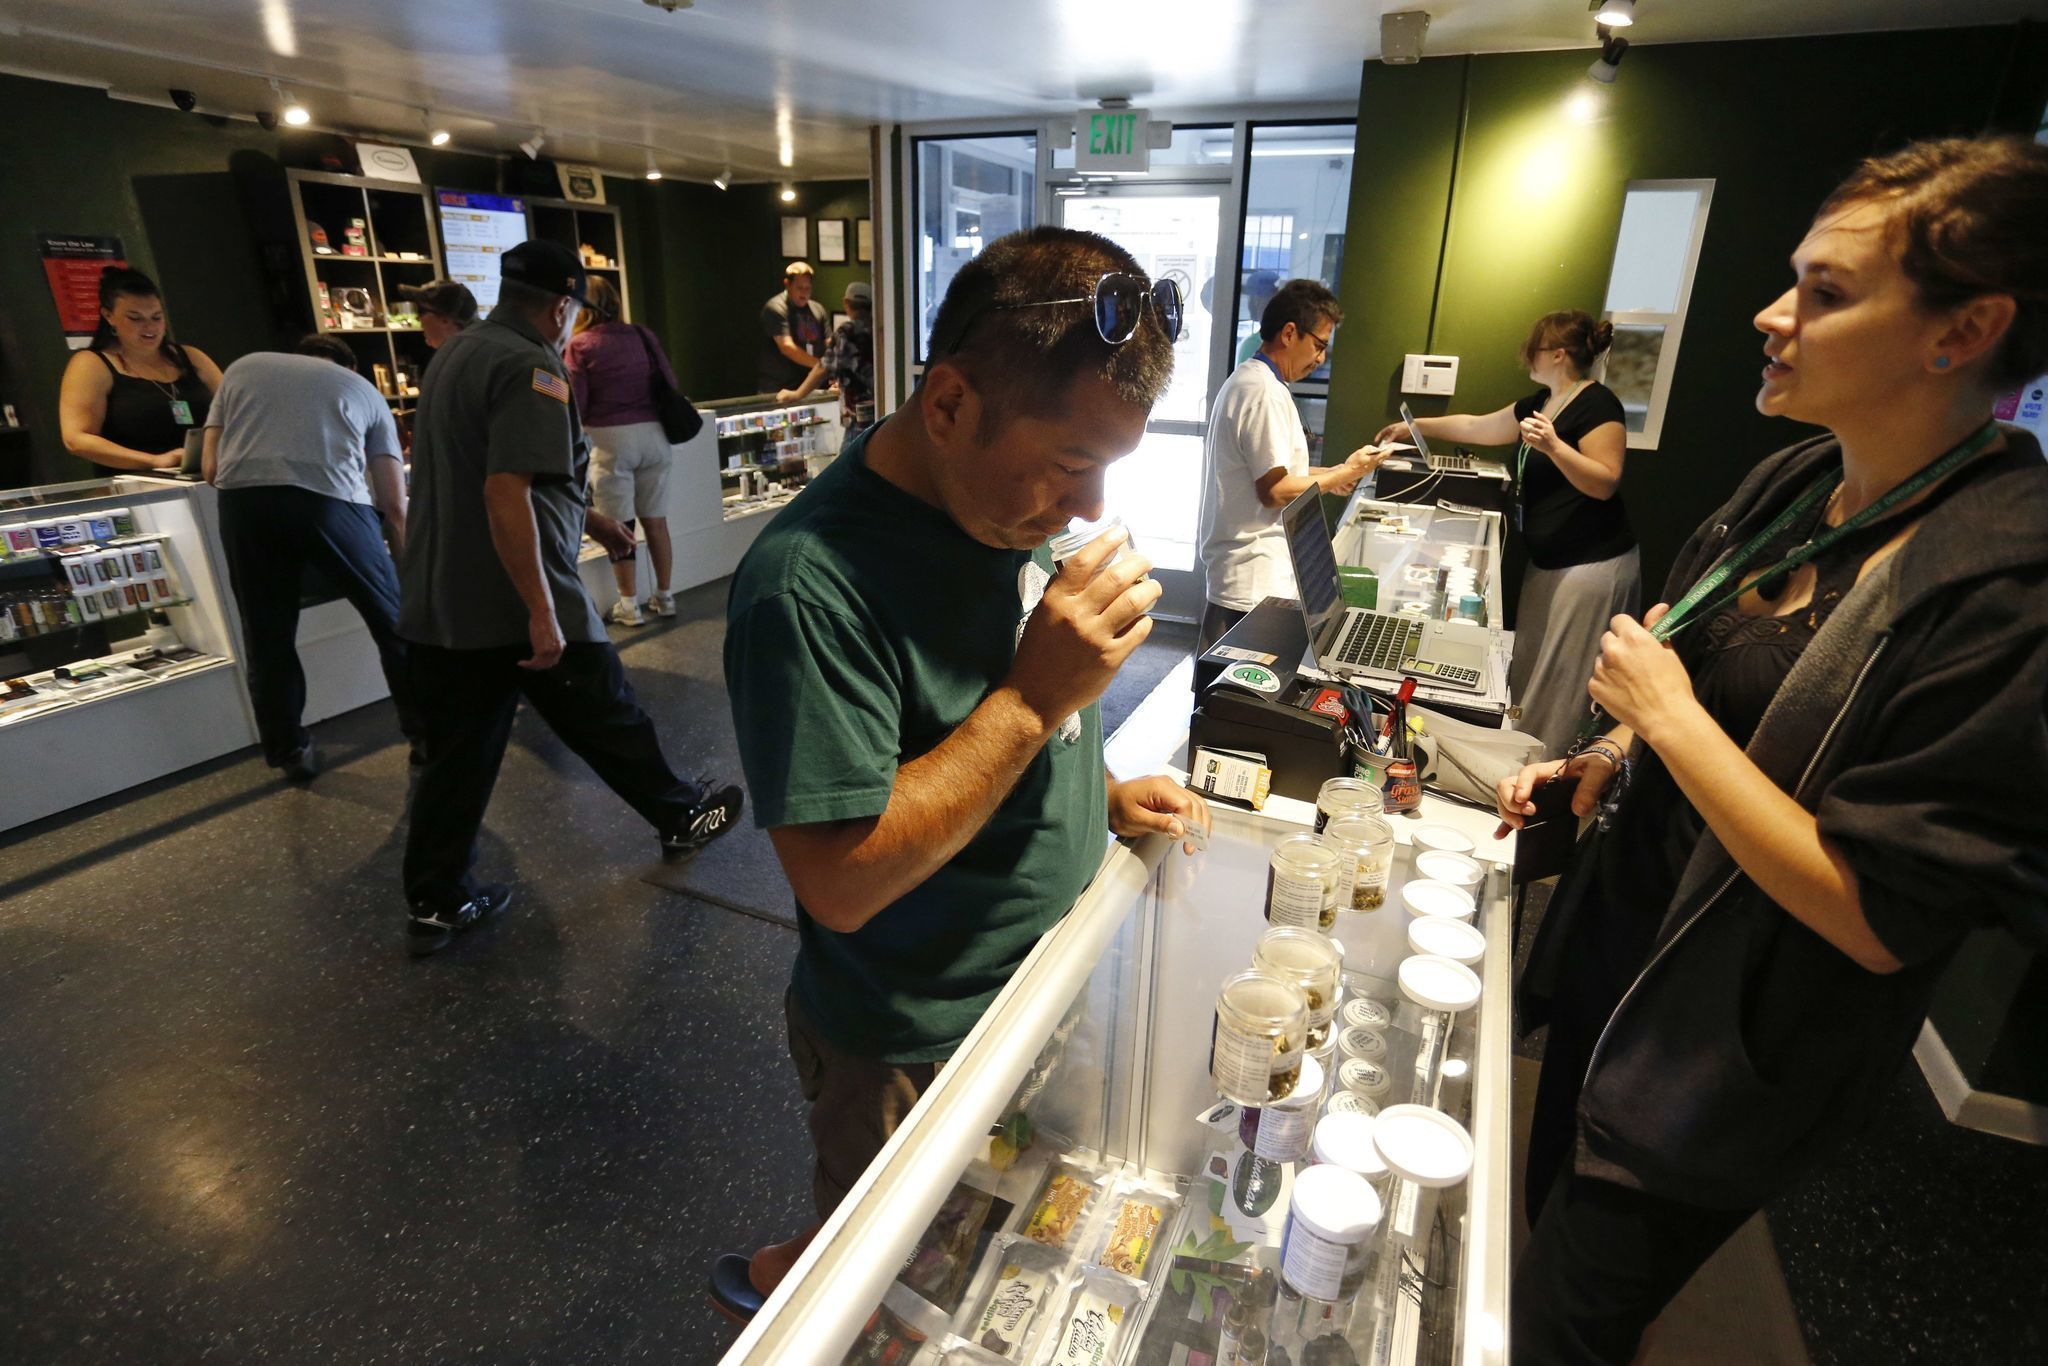 If President Trump wants to help American businesses, he should start by legalizing marijuana